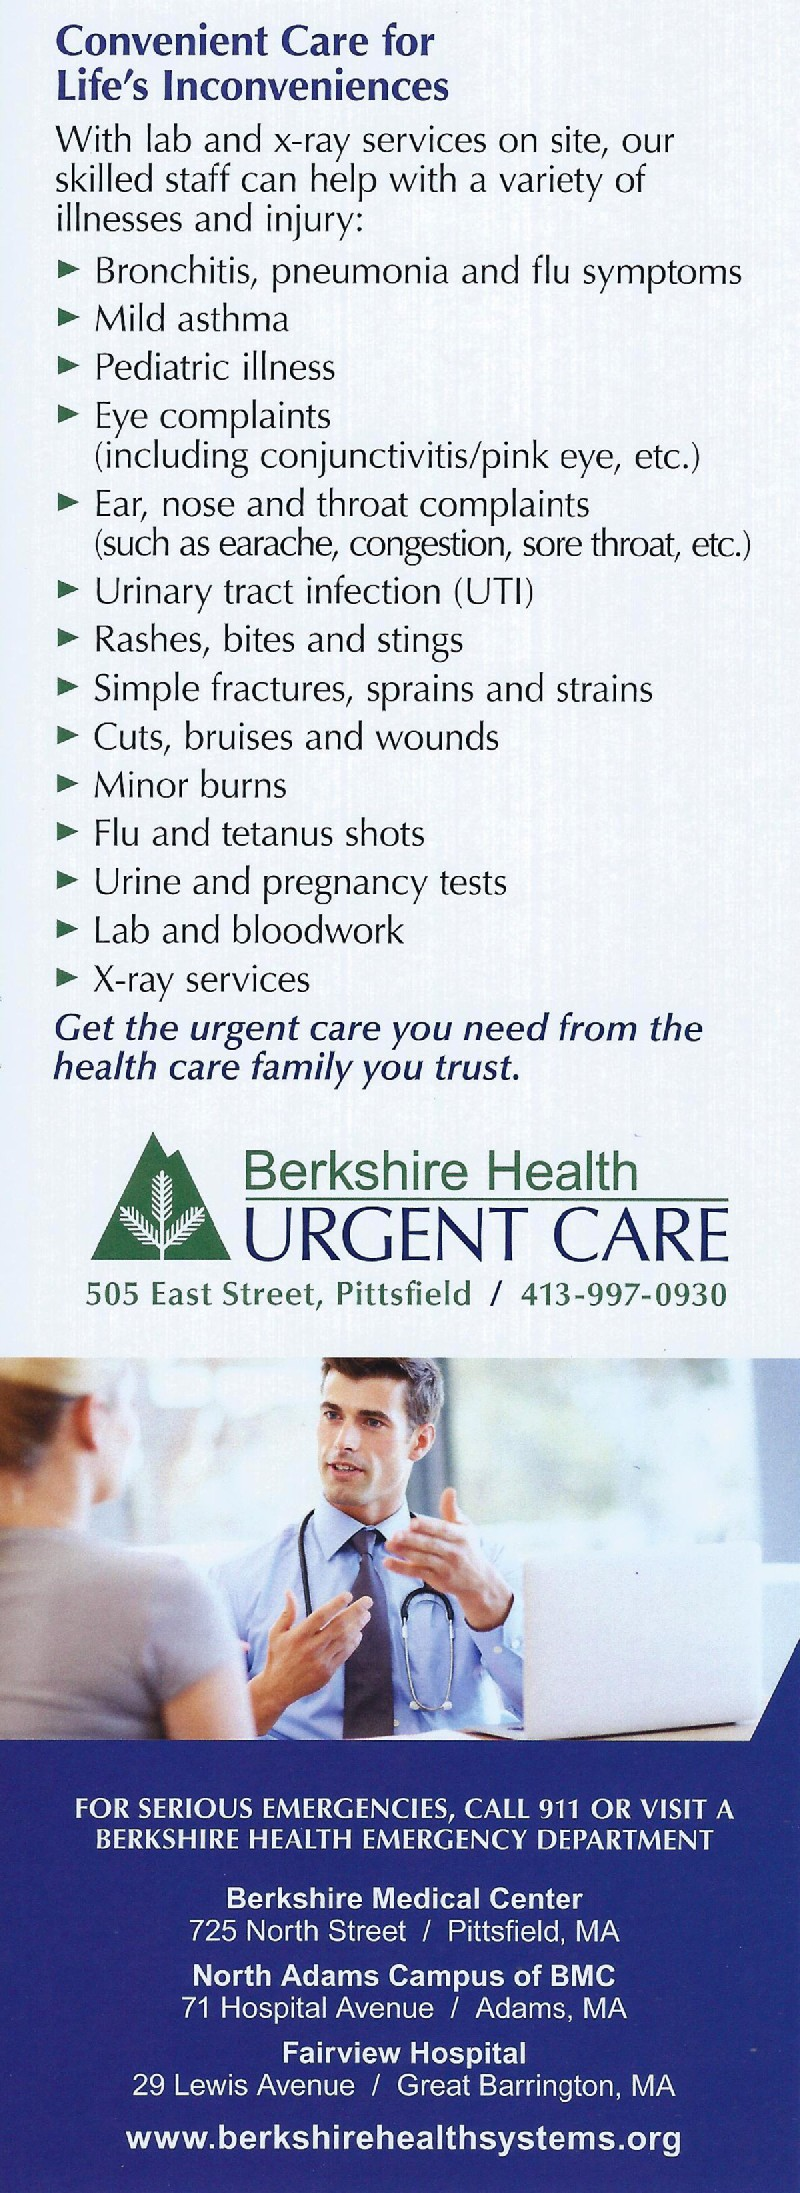 Berkshire Health Urgent Care brochure thumbnail